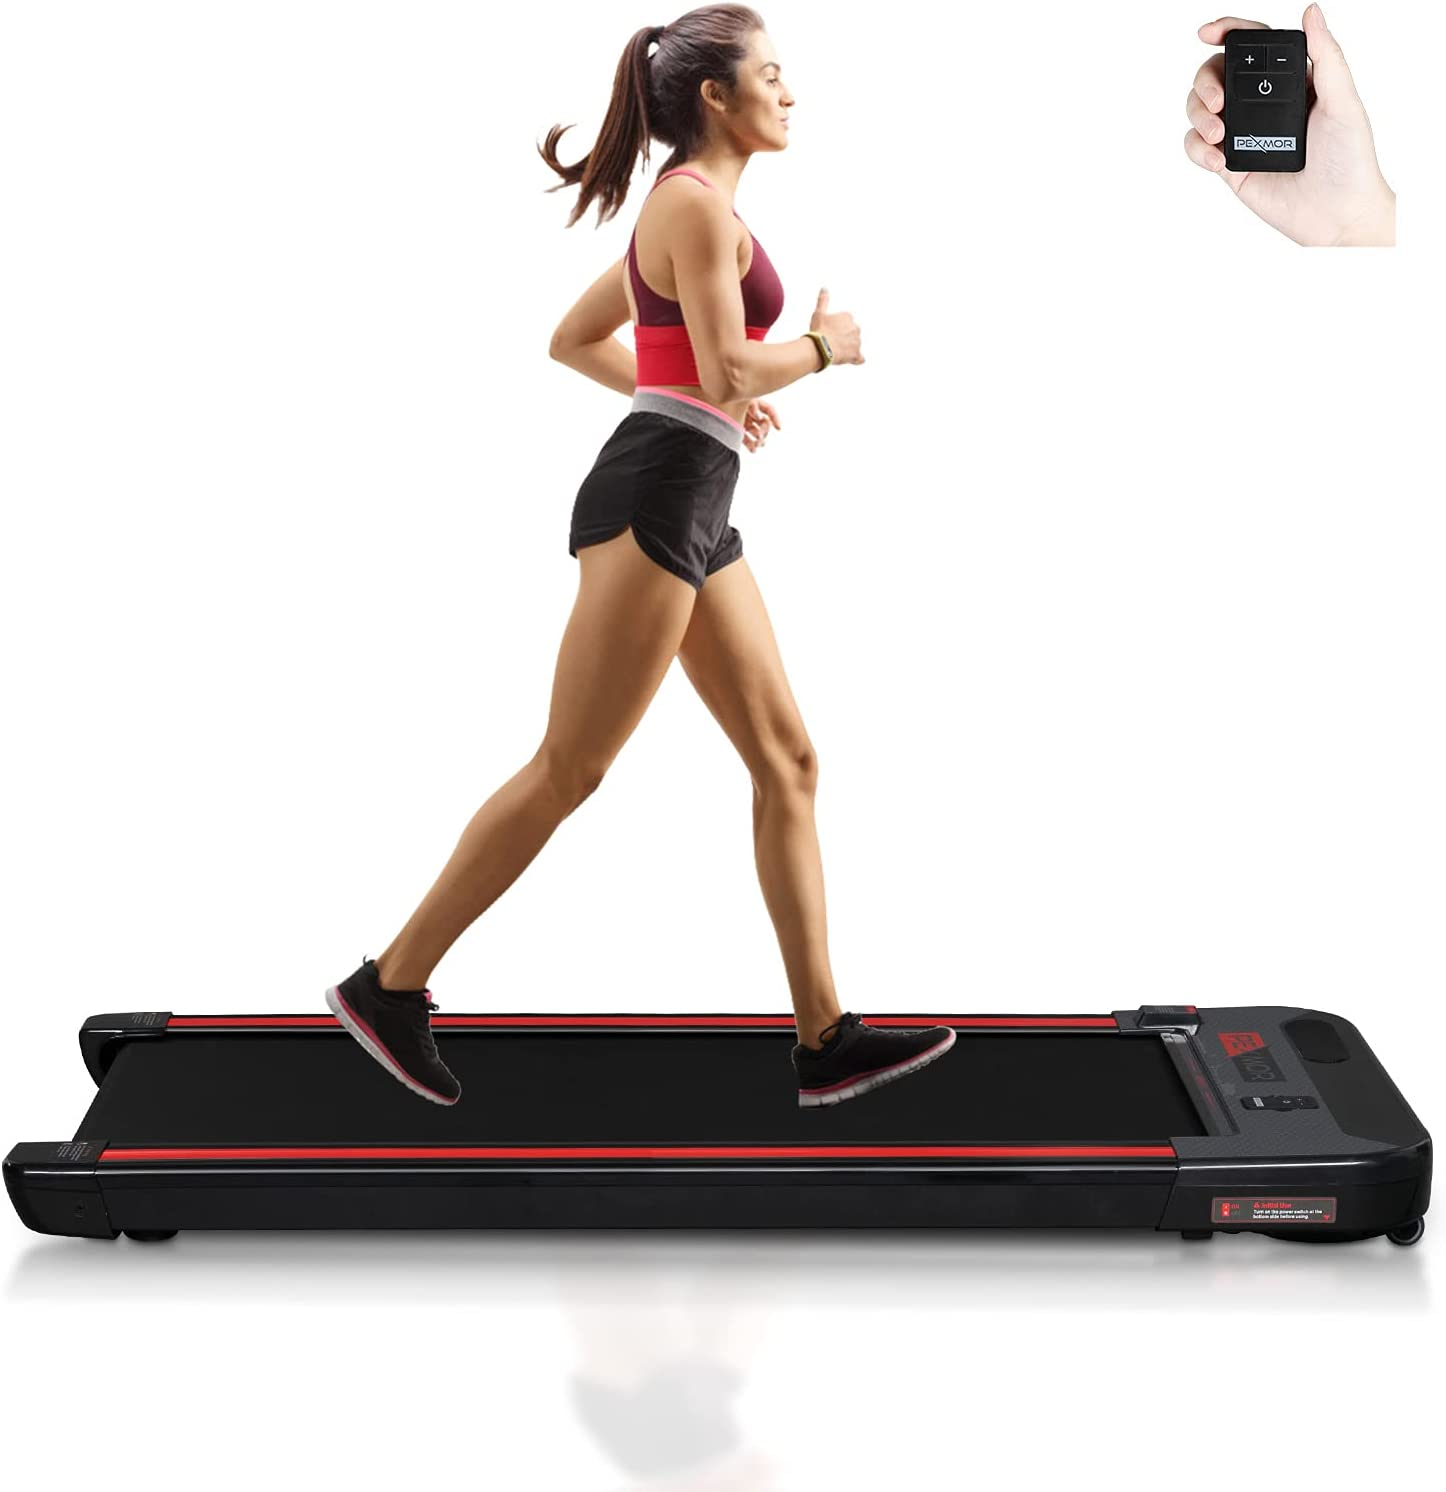 PEXMOR Under-Desk Walking Treadmill Assembly-Free w Portability Max 89% Quality inspection OFF